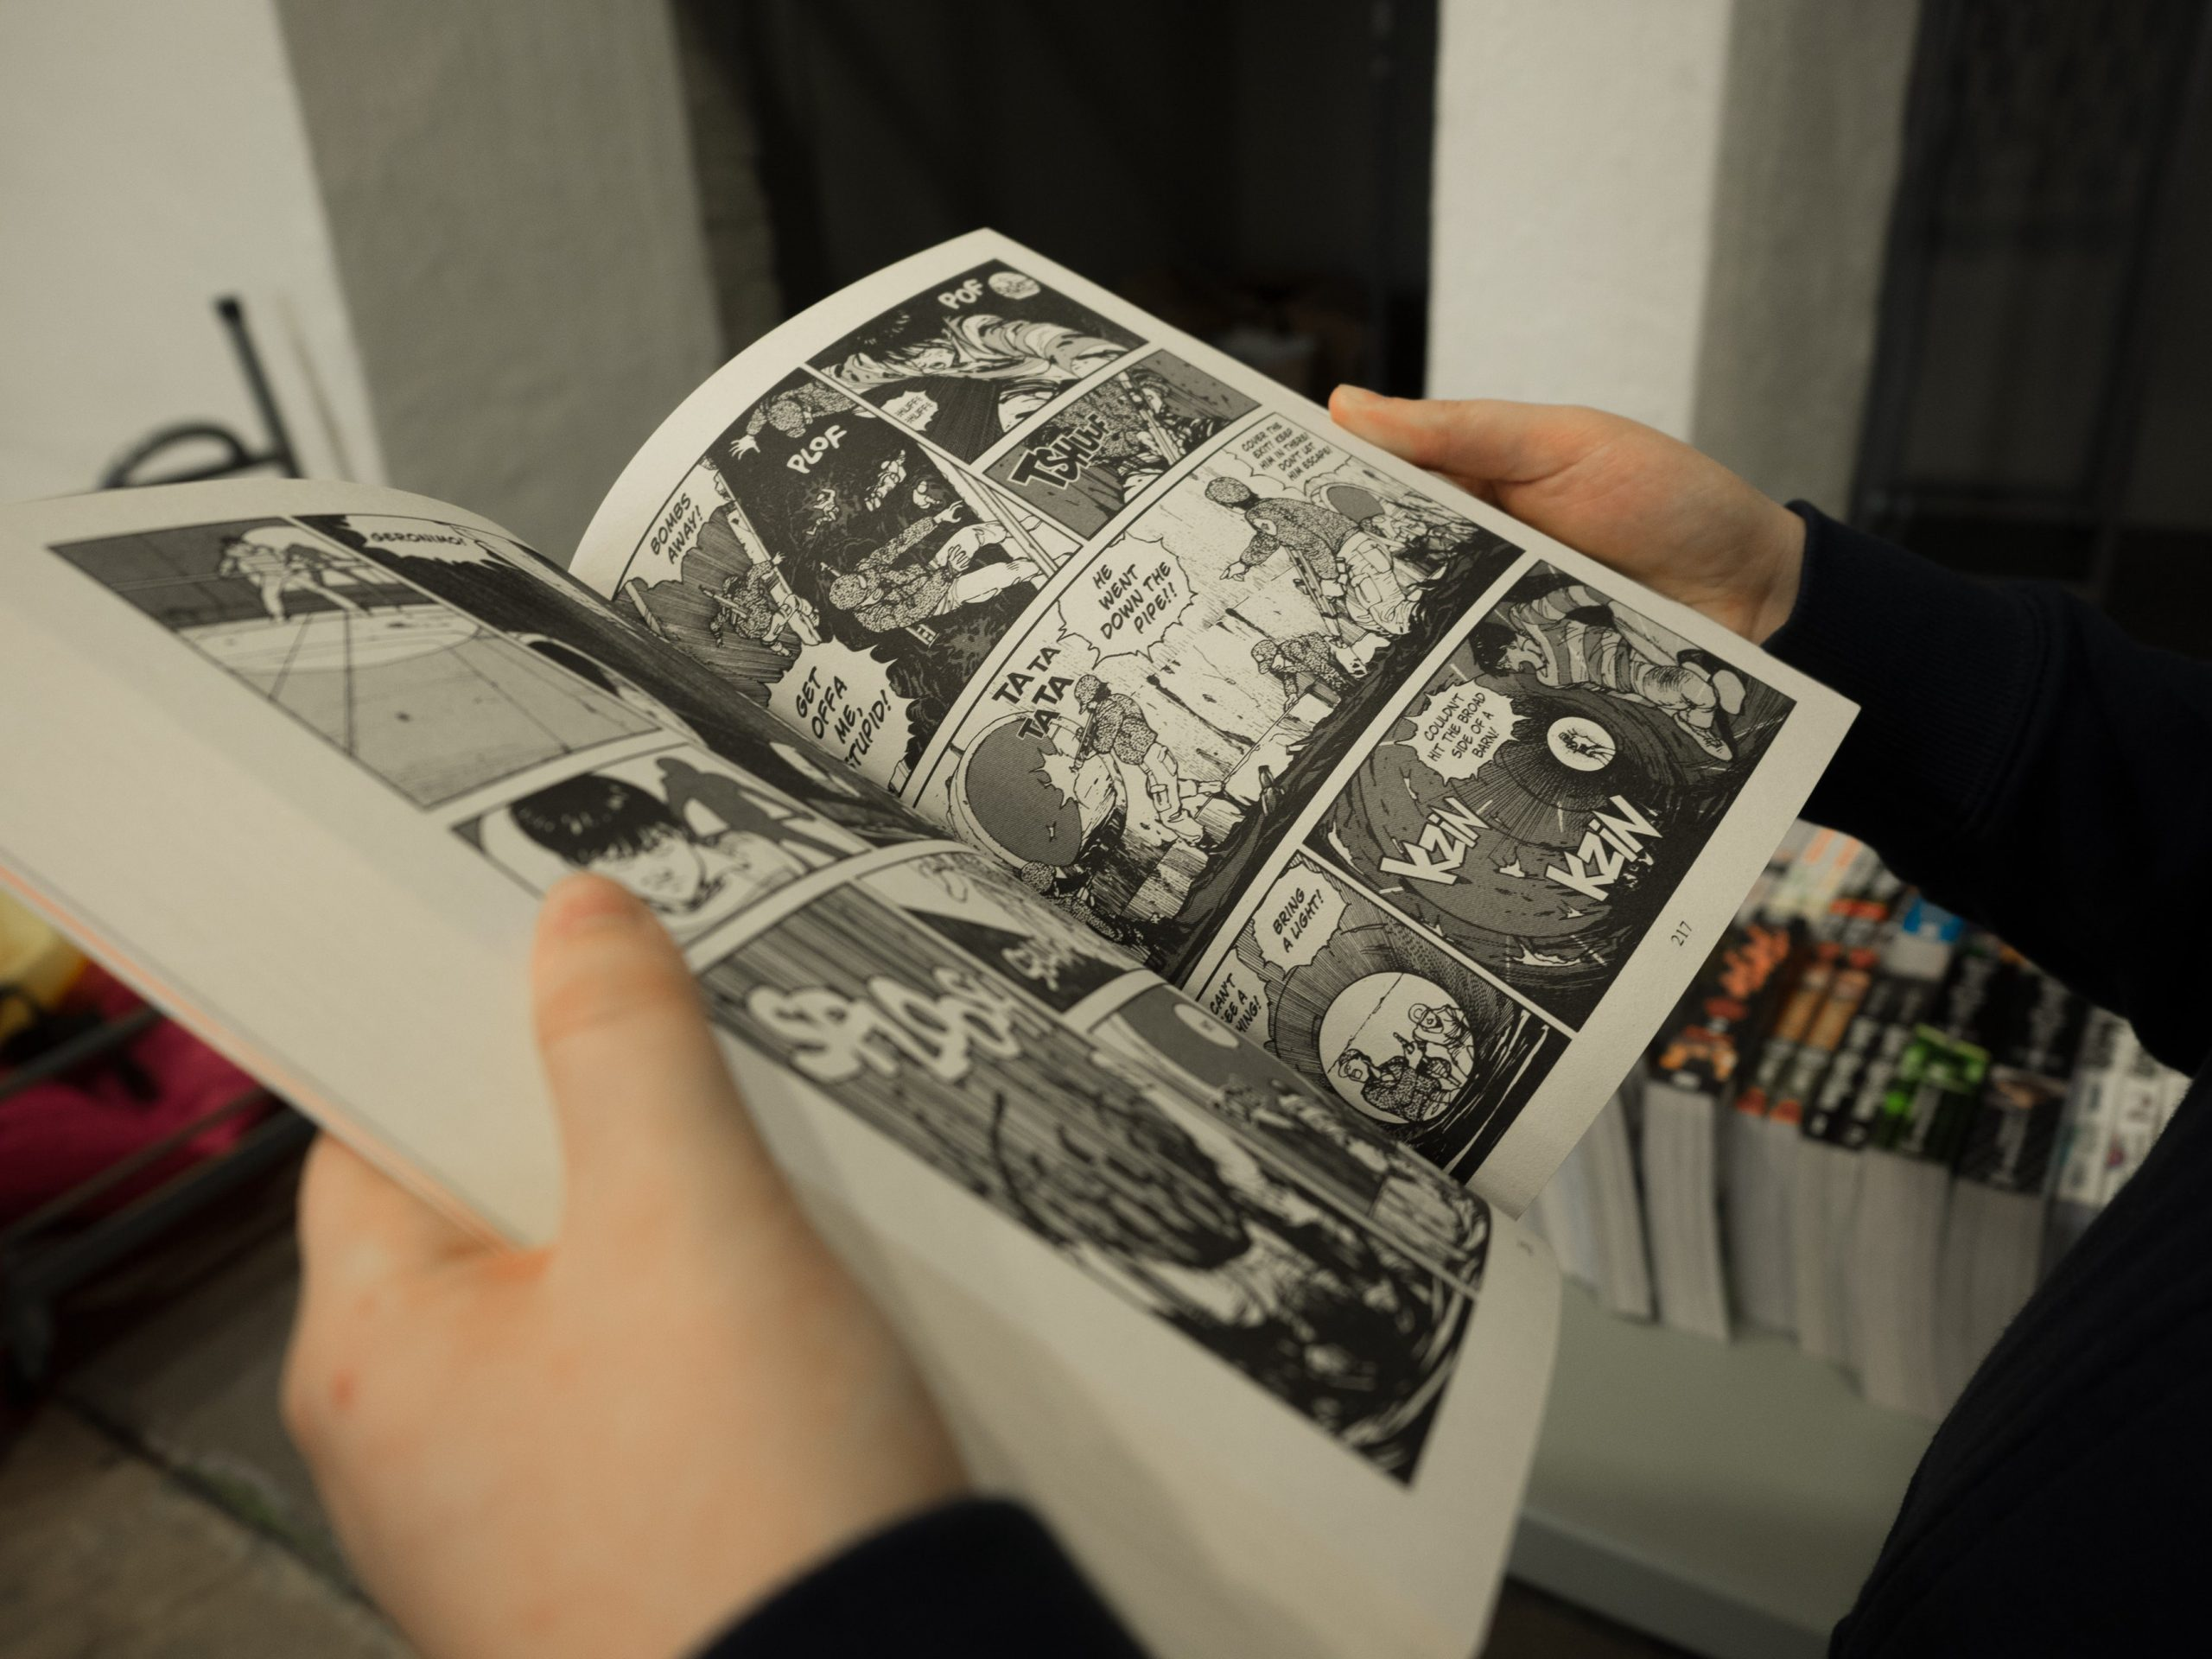 Comics as Documentation